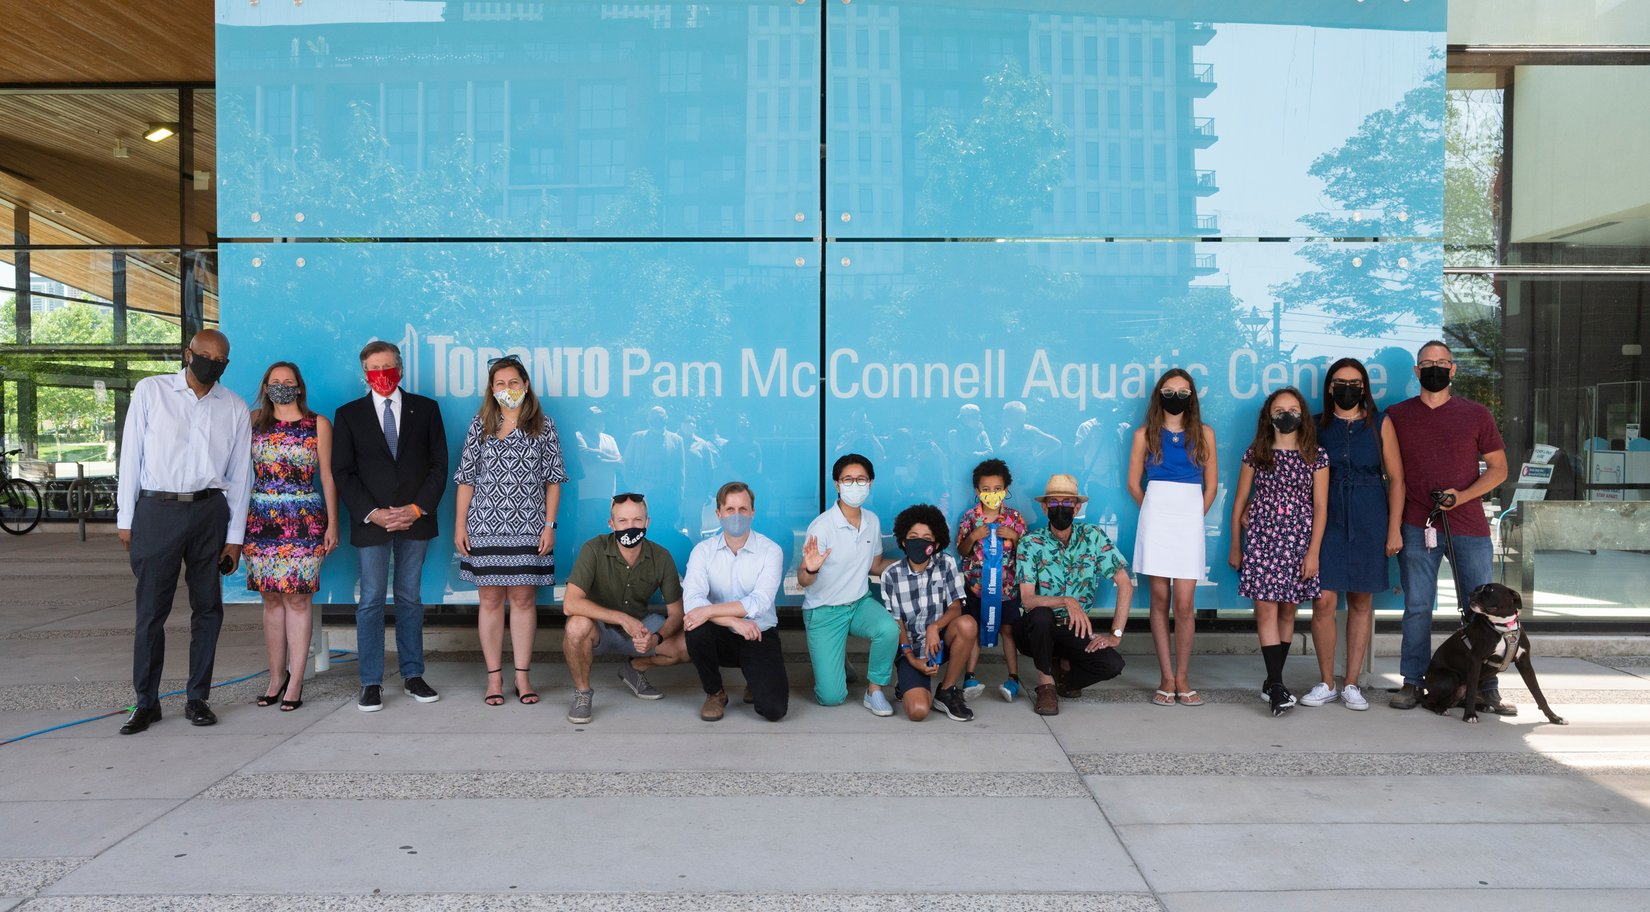 Unveiling a new sign for the renamed Pam McConnell Aquatic Centre in Regent Park, a picture with attendees